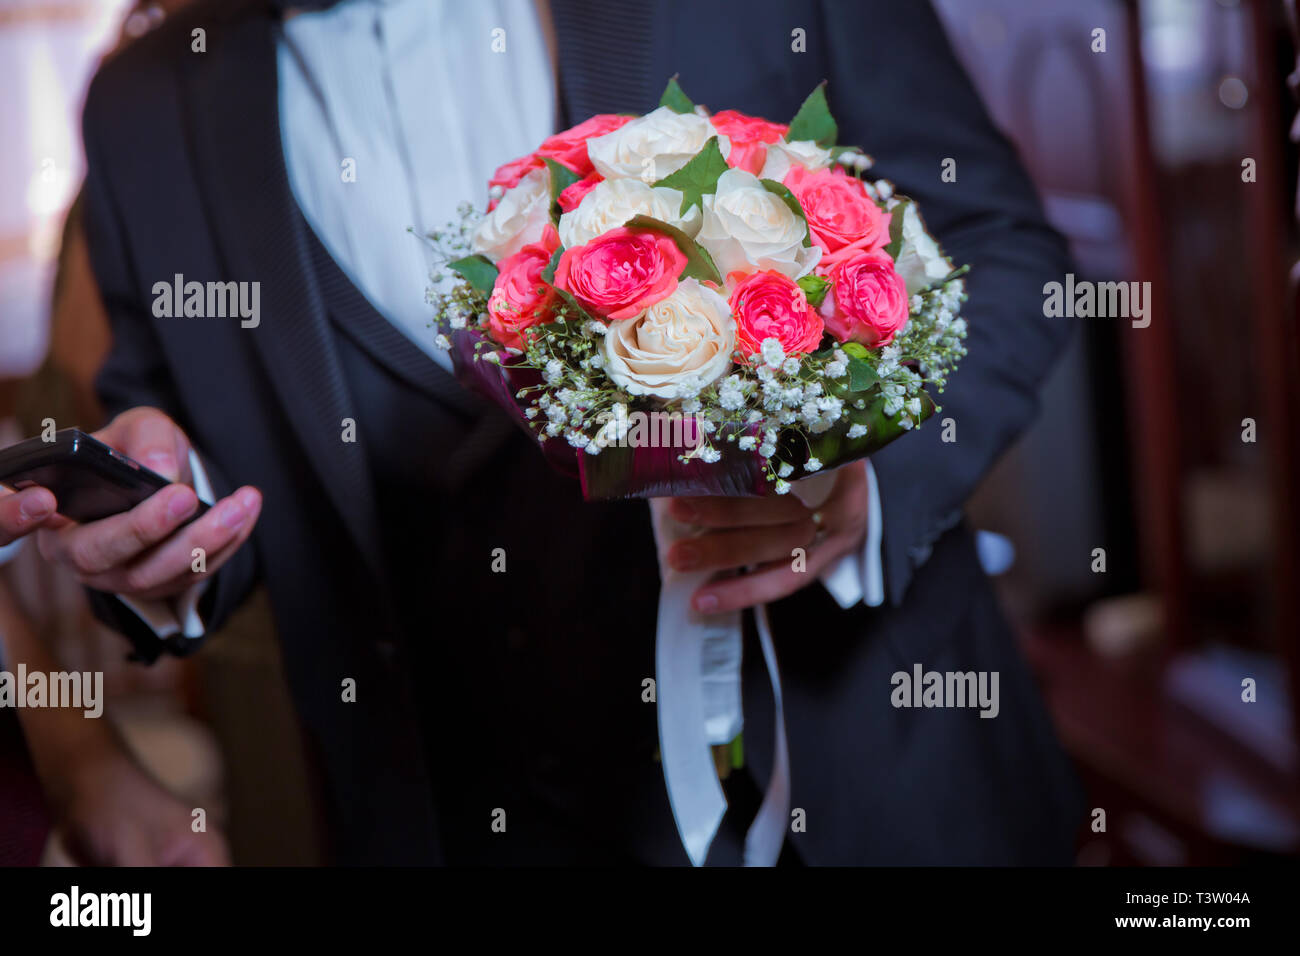 Man Holding A Beautiful Bouquet Of Tender And Colorful Flowers Tied With A Pretty Ribbon Groom Holding Wedding Bouquet Of White Roses Bridal Stock Photo Alamy